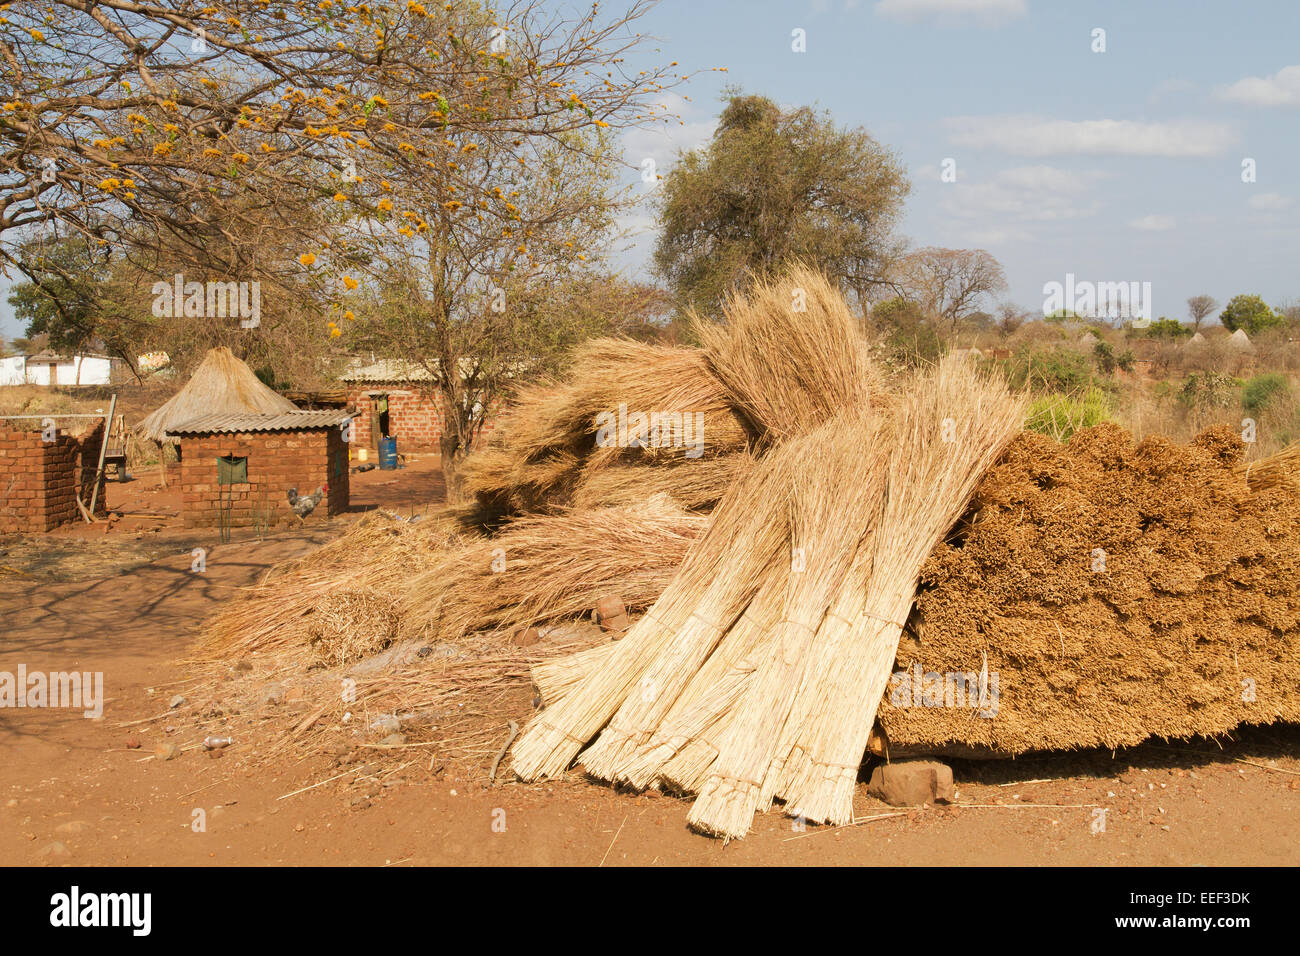 Pile Of Bundles Of Thatching Grass To Make A Thatched Roof